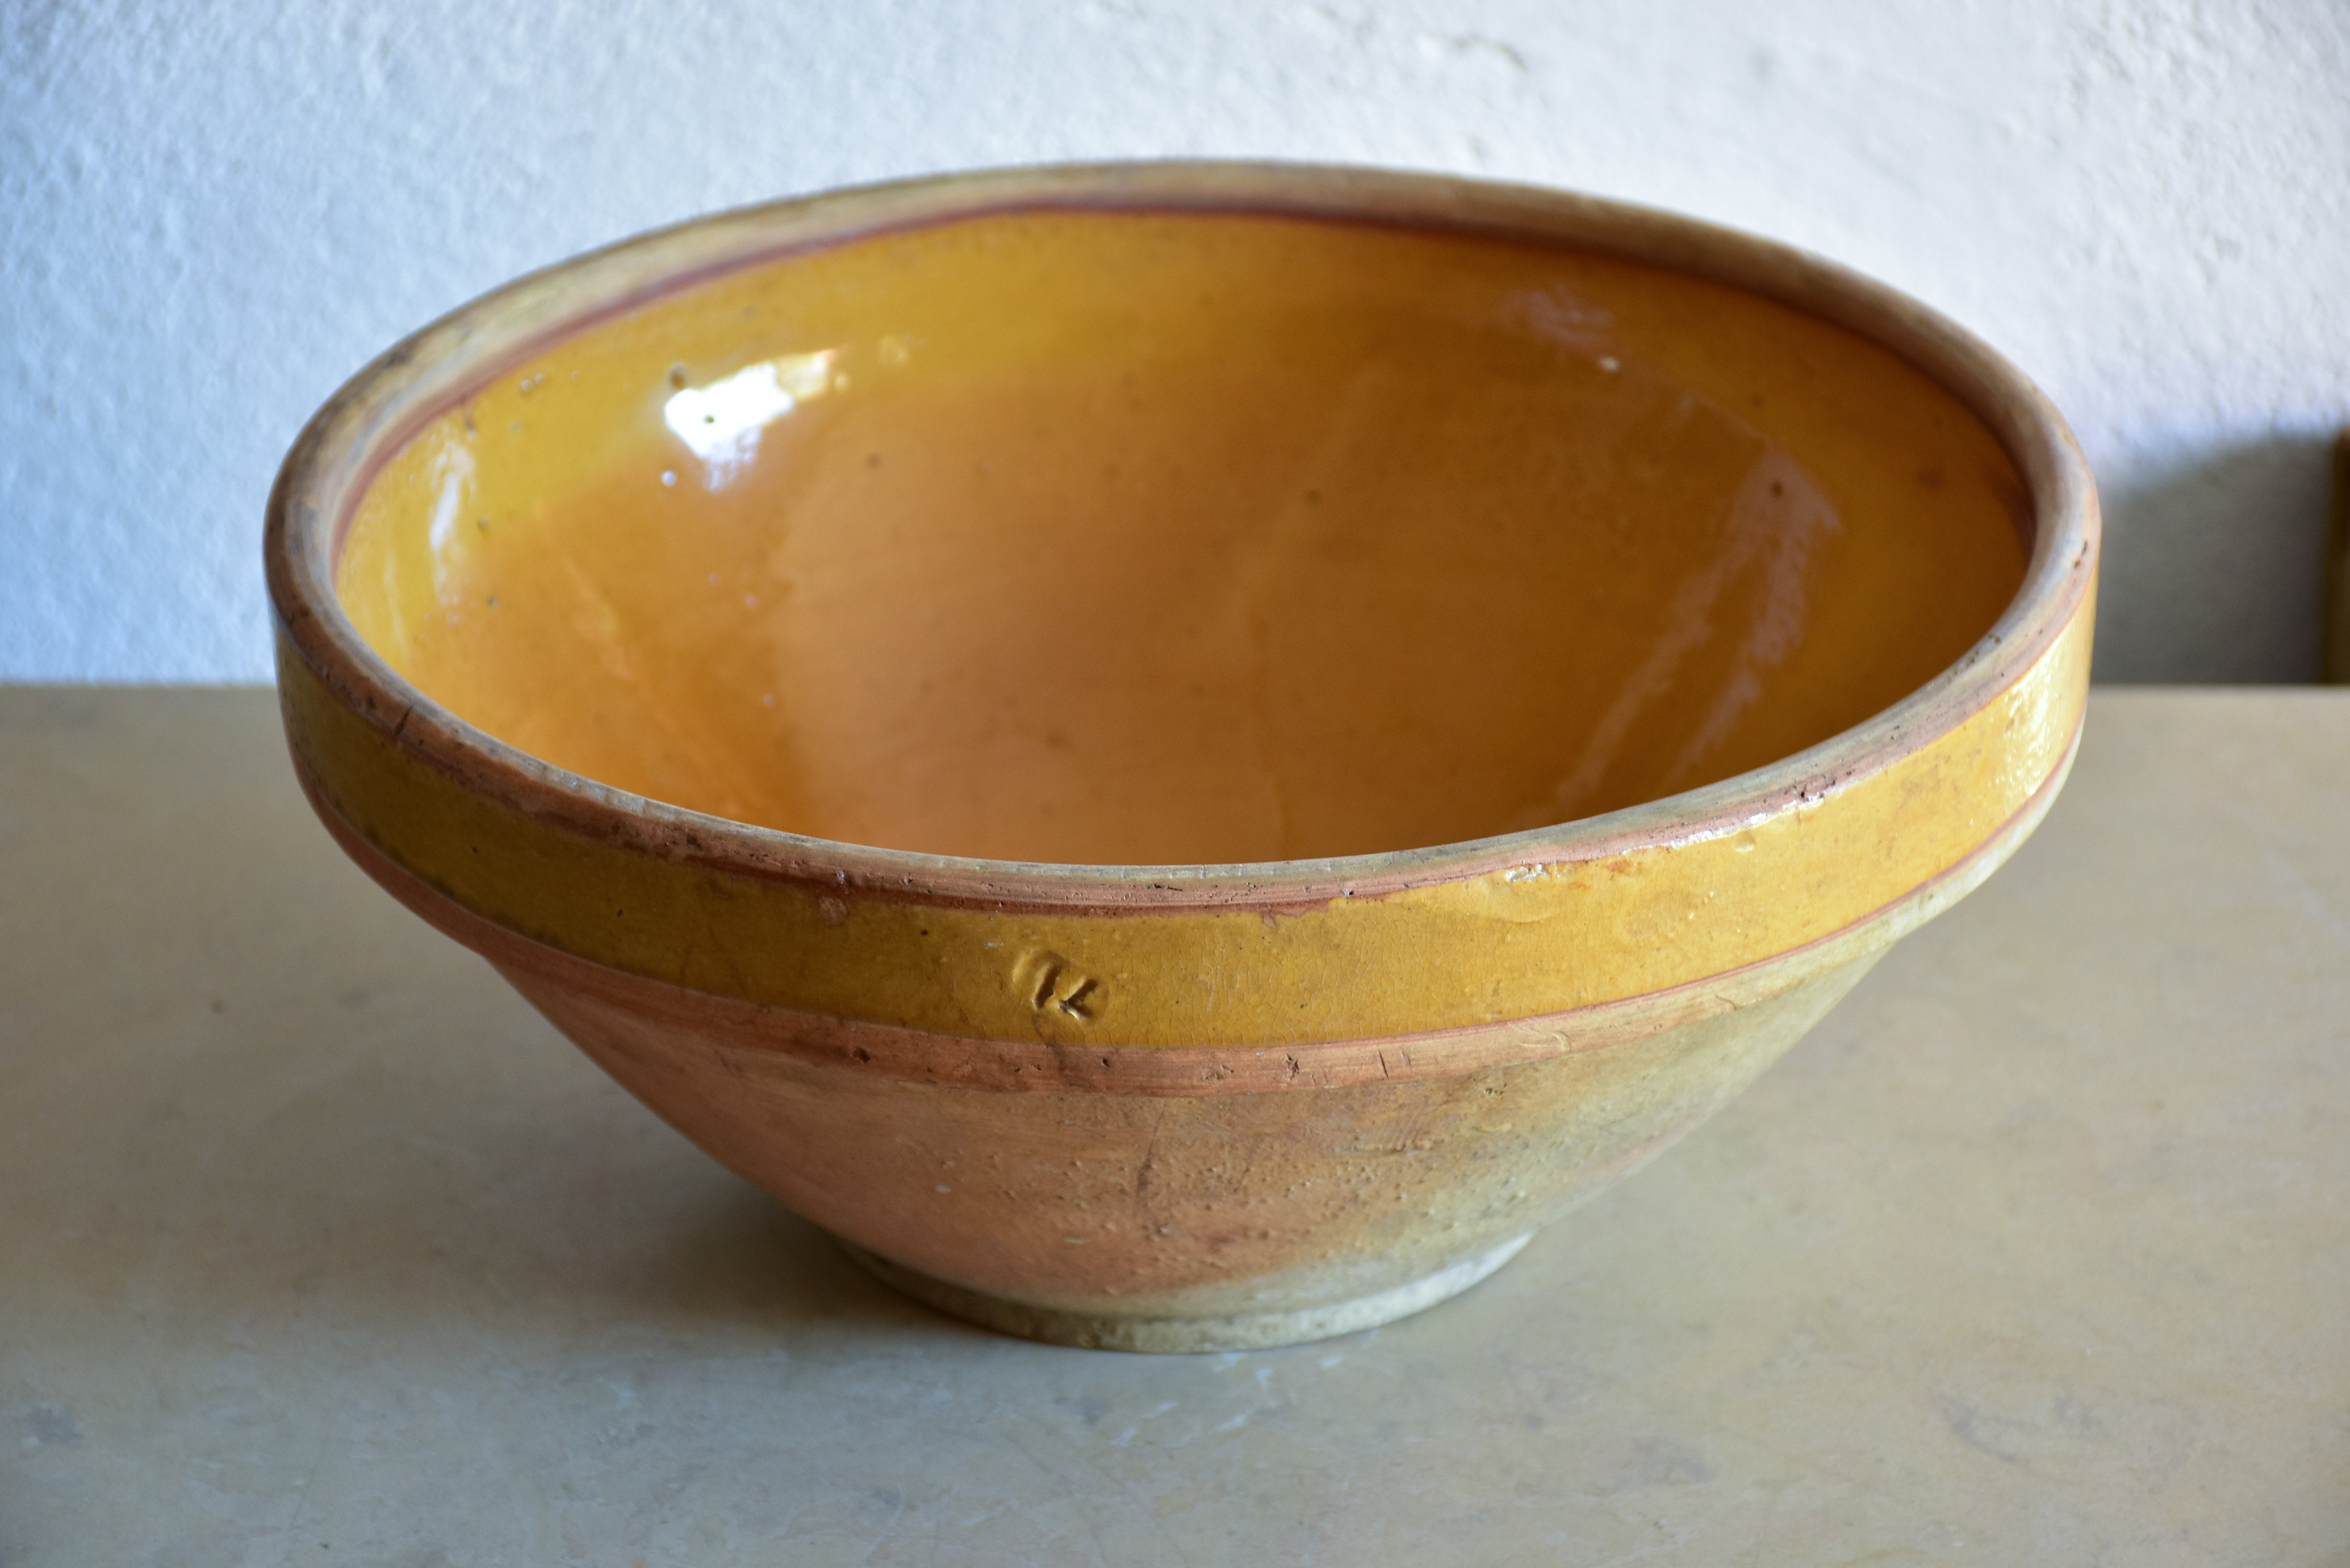 19th century kitchen bowl with ochre glaze